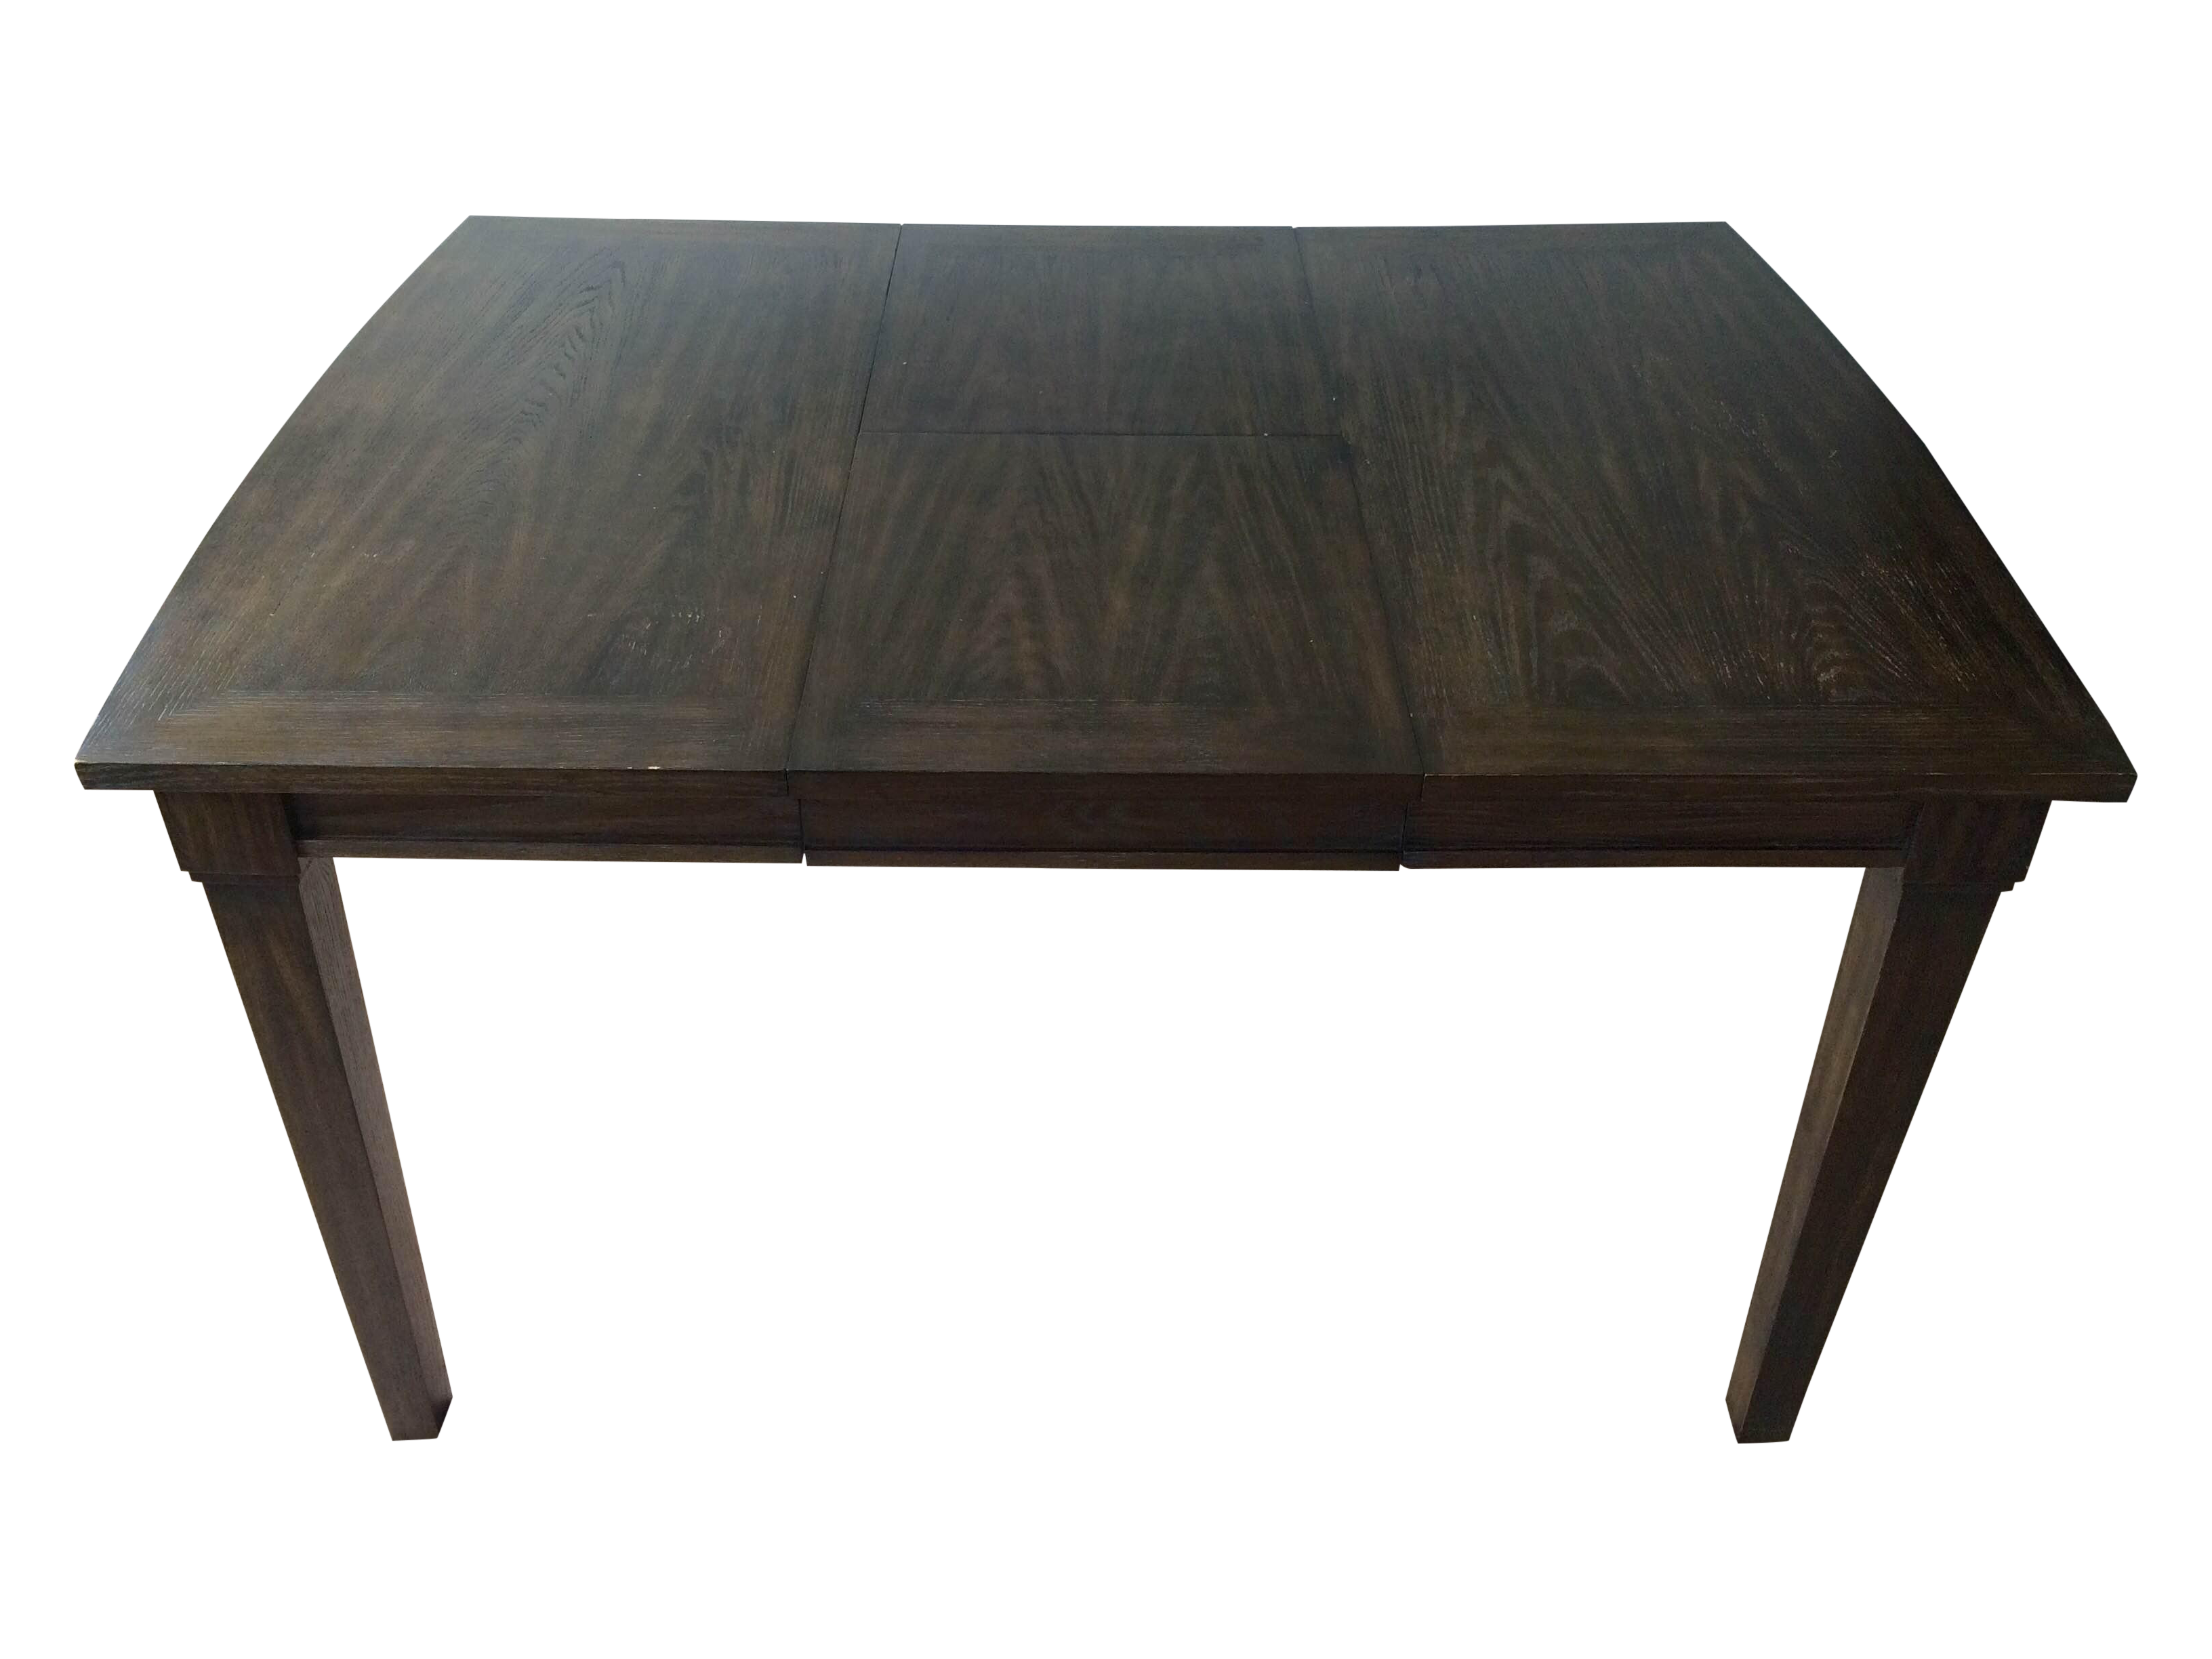 Rustic Modern Counter Height Dining Table Chairish : 3043cb24 03bd 4859 8b15 5cb9870aa456aspectfitampwidth640ampheight640 from www.chairish.com size 640 x 640 jpeg 23kB